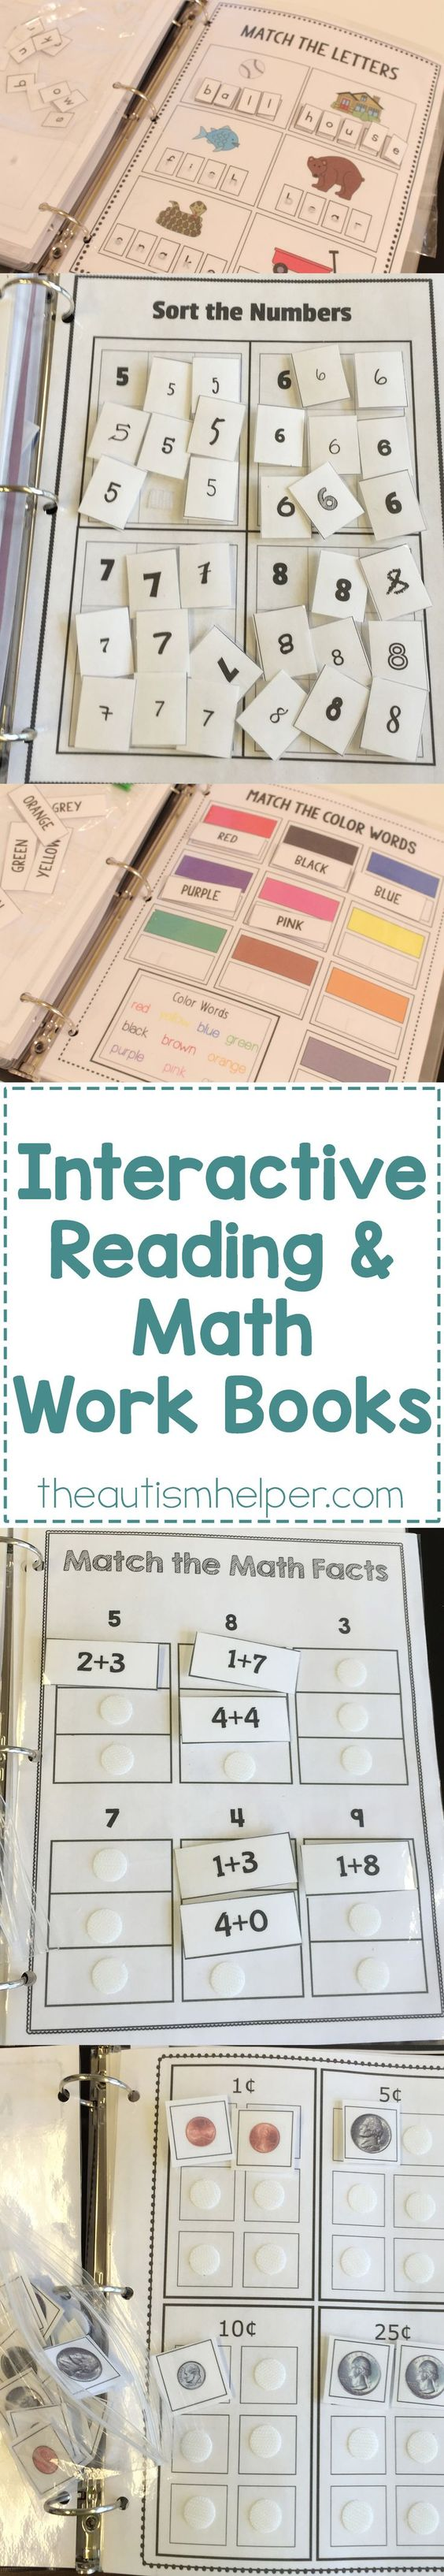 Classroom Interactive Ideas ~ Interactive reading and math work books language